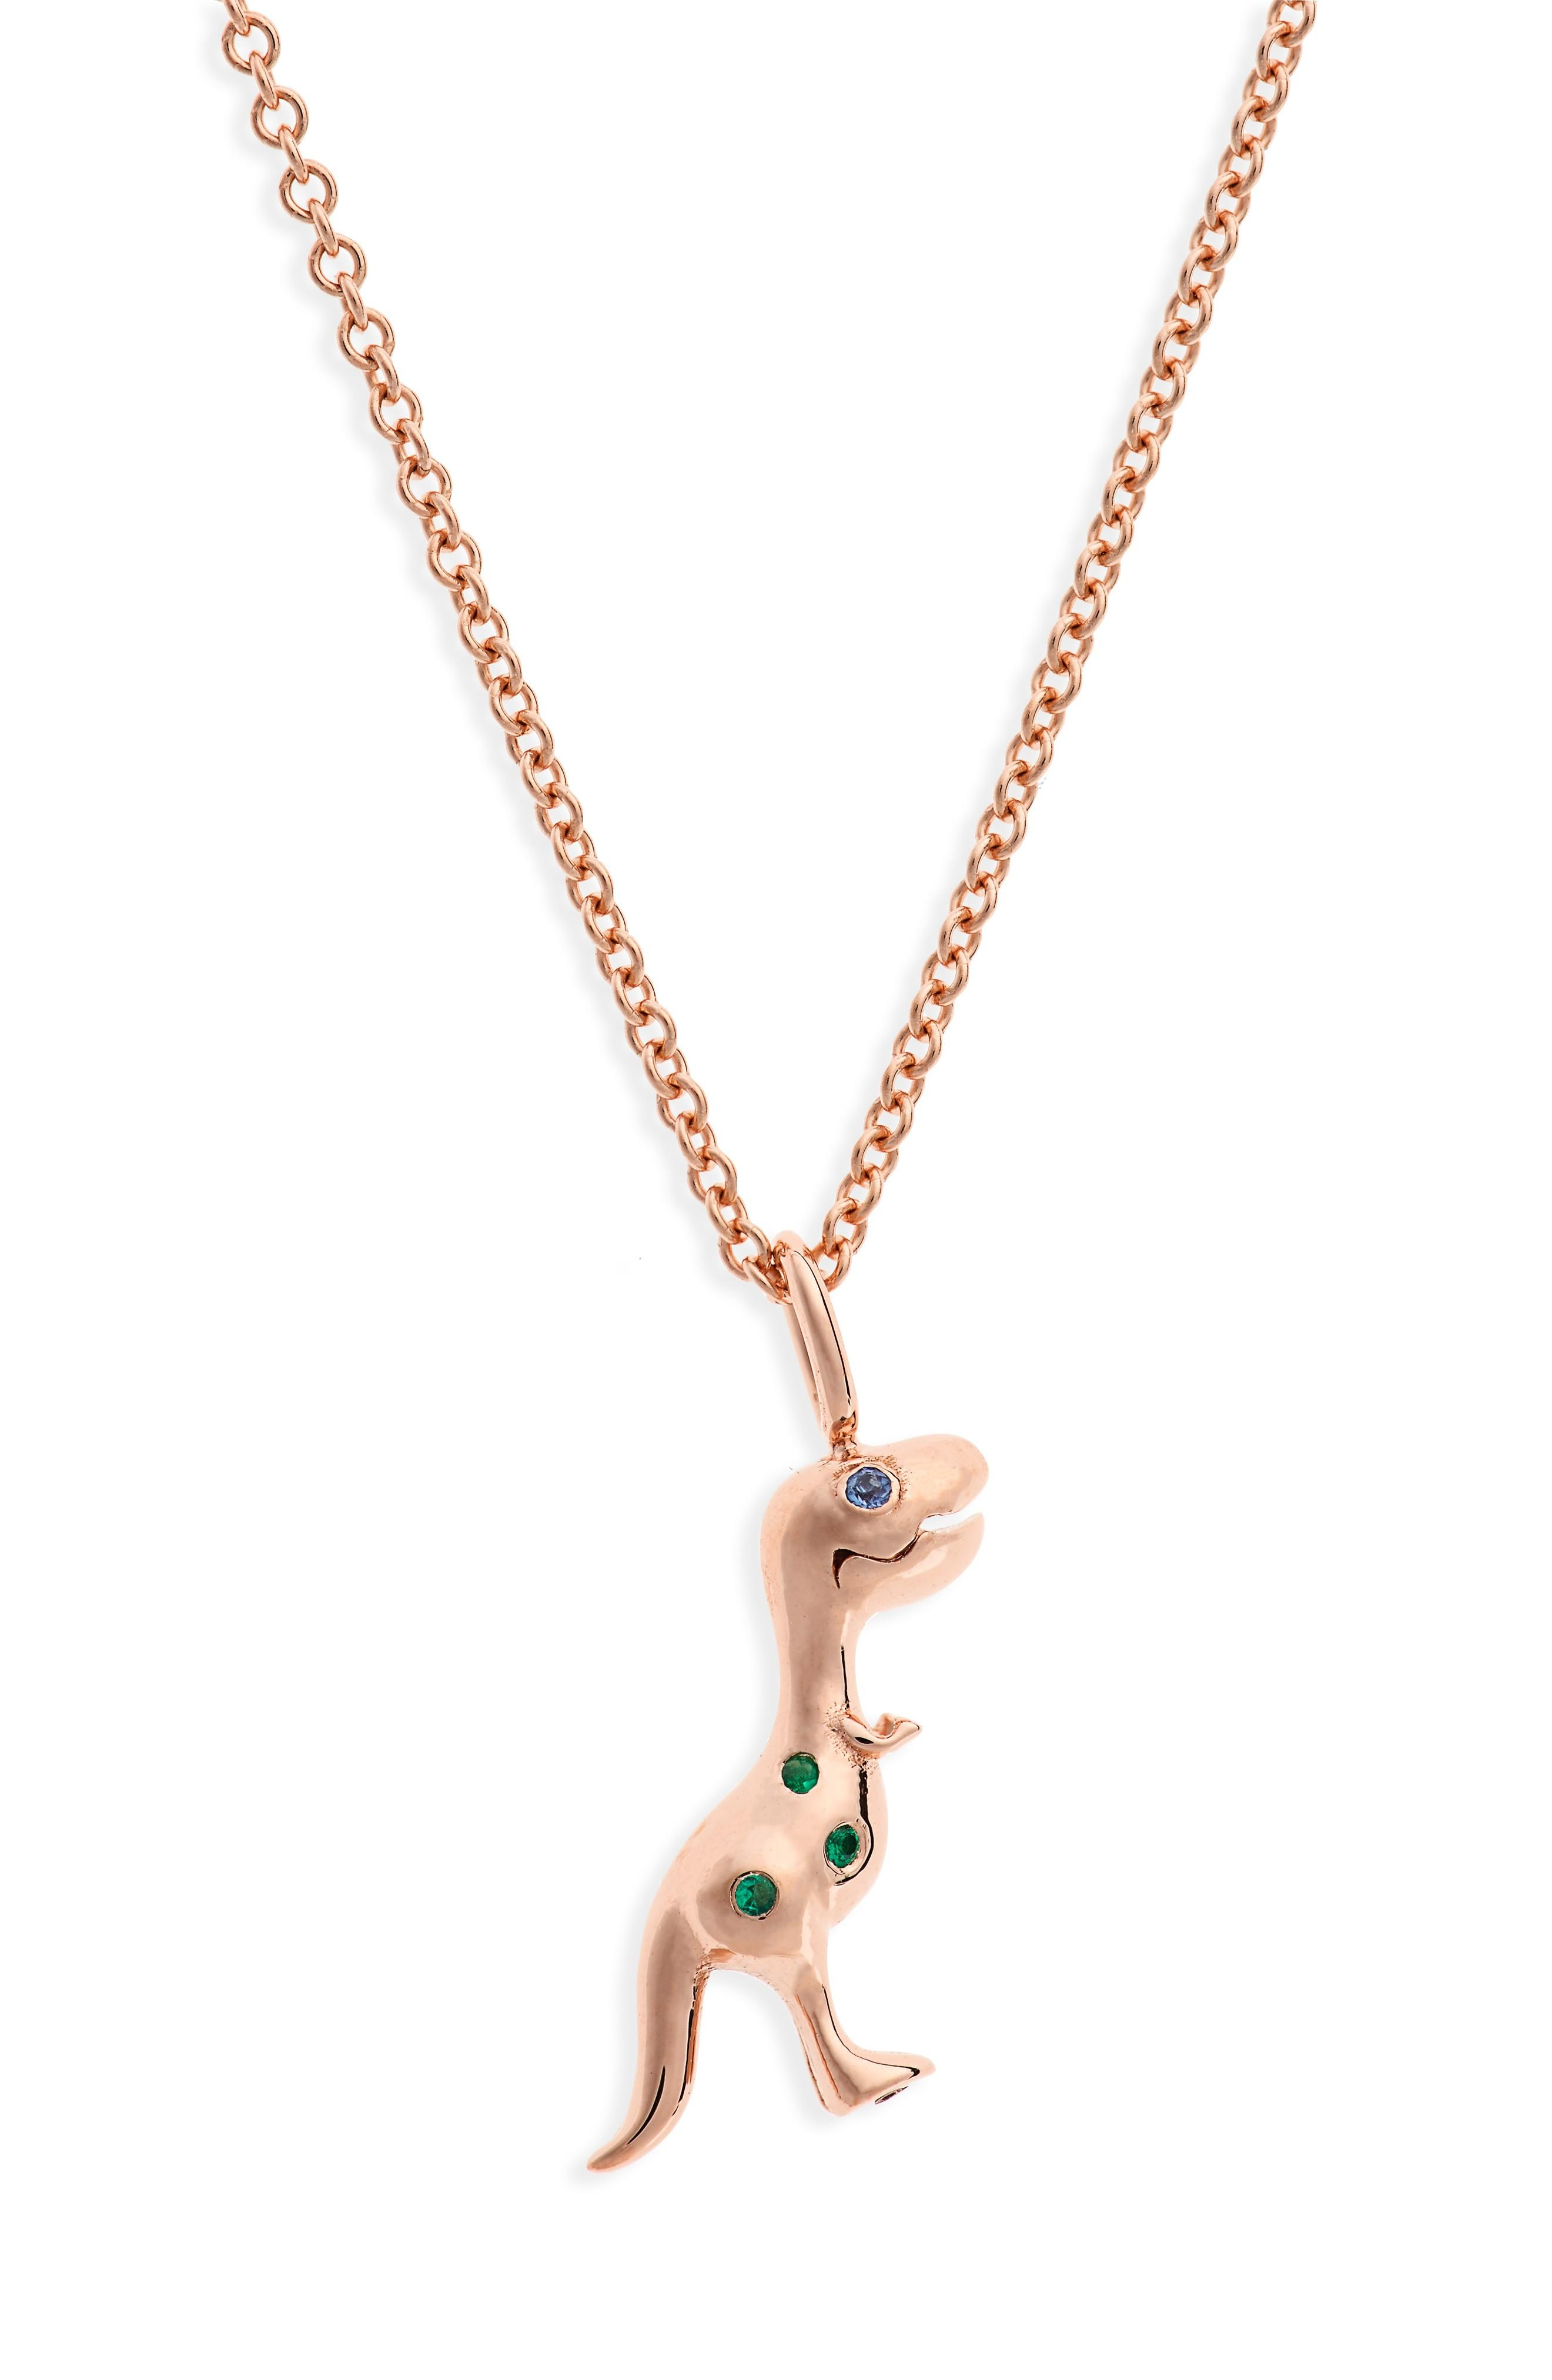 Daniela Villegas X Jurassic Park 25th Anniversary Baby T-rex Sapphire & Emerald Pendant Necklace (nordstrom Exclusive In Pink Gold